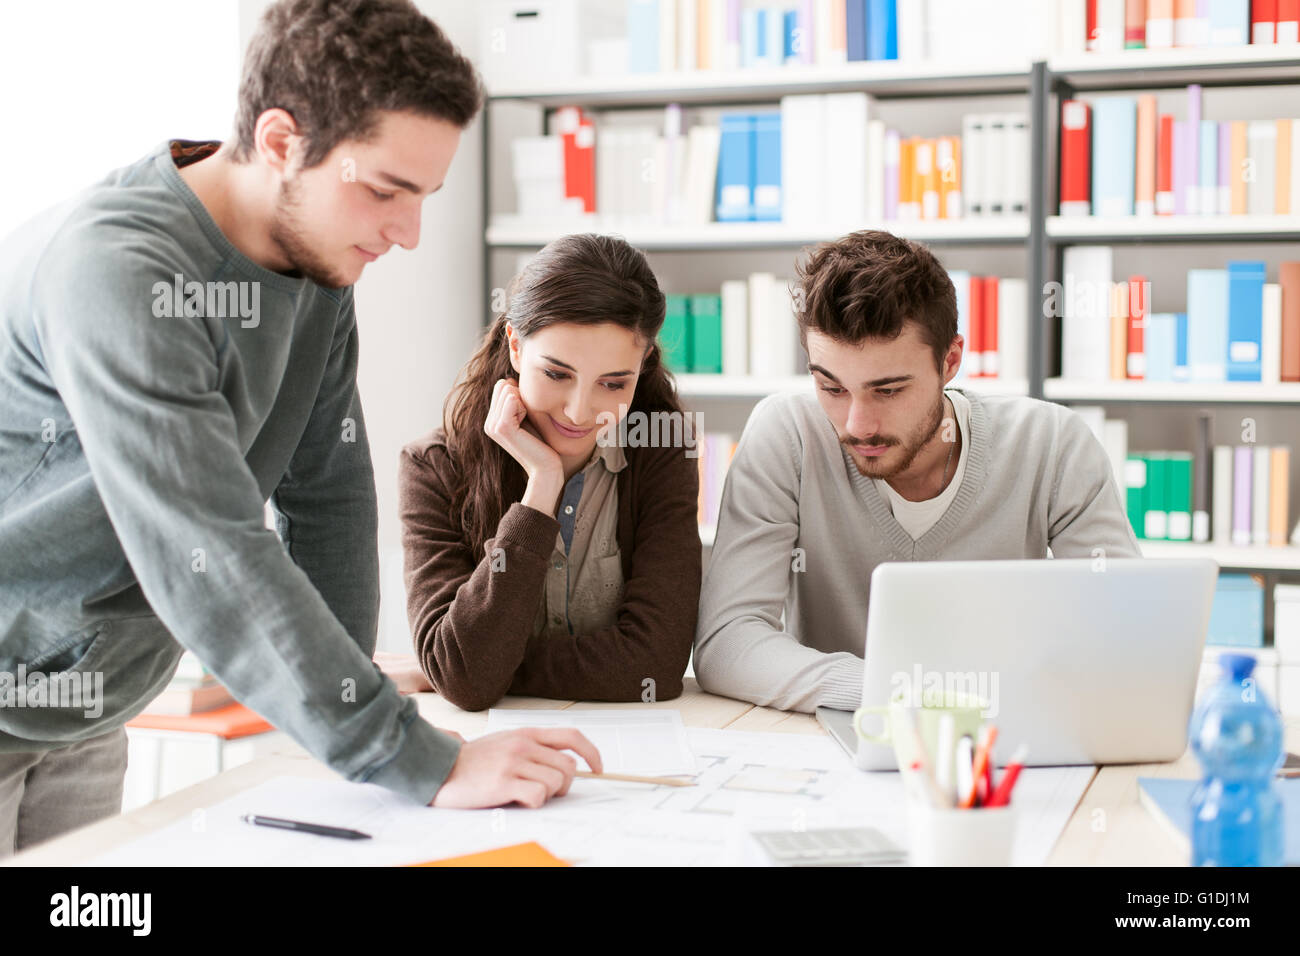 the pressure of working college students For some students, working in college is a necessity for others, it is simply a desire whatever the reason, however, it's important to know the pros and cons of working while in college before agreeing to take a job.